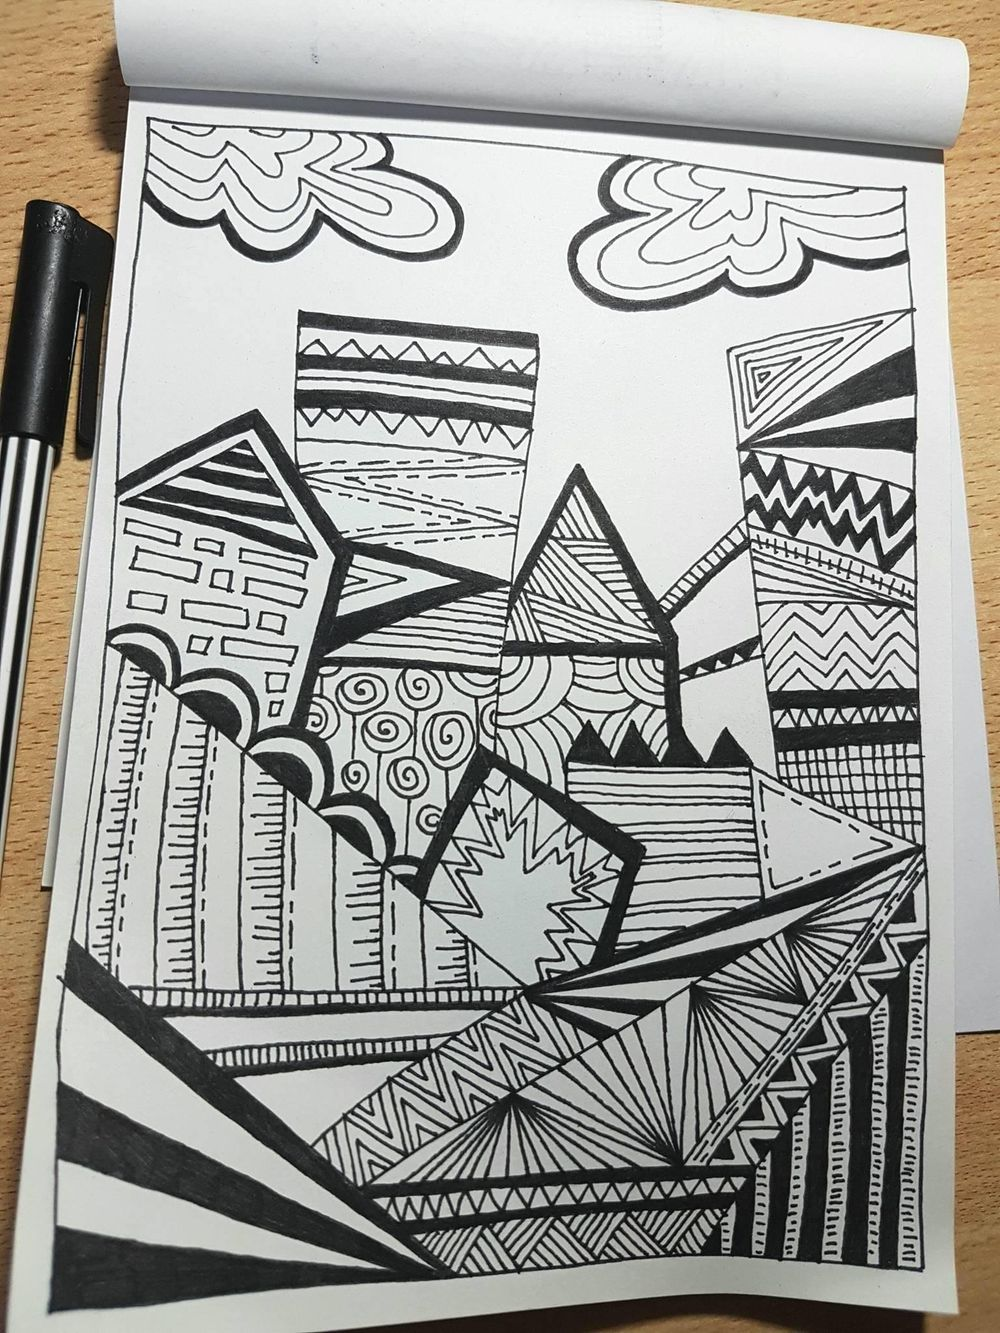 Doodling experiments - image 5 - student project